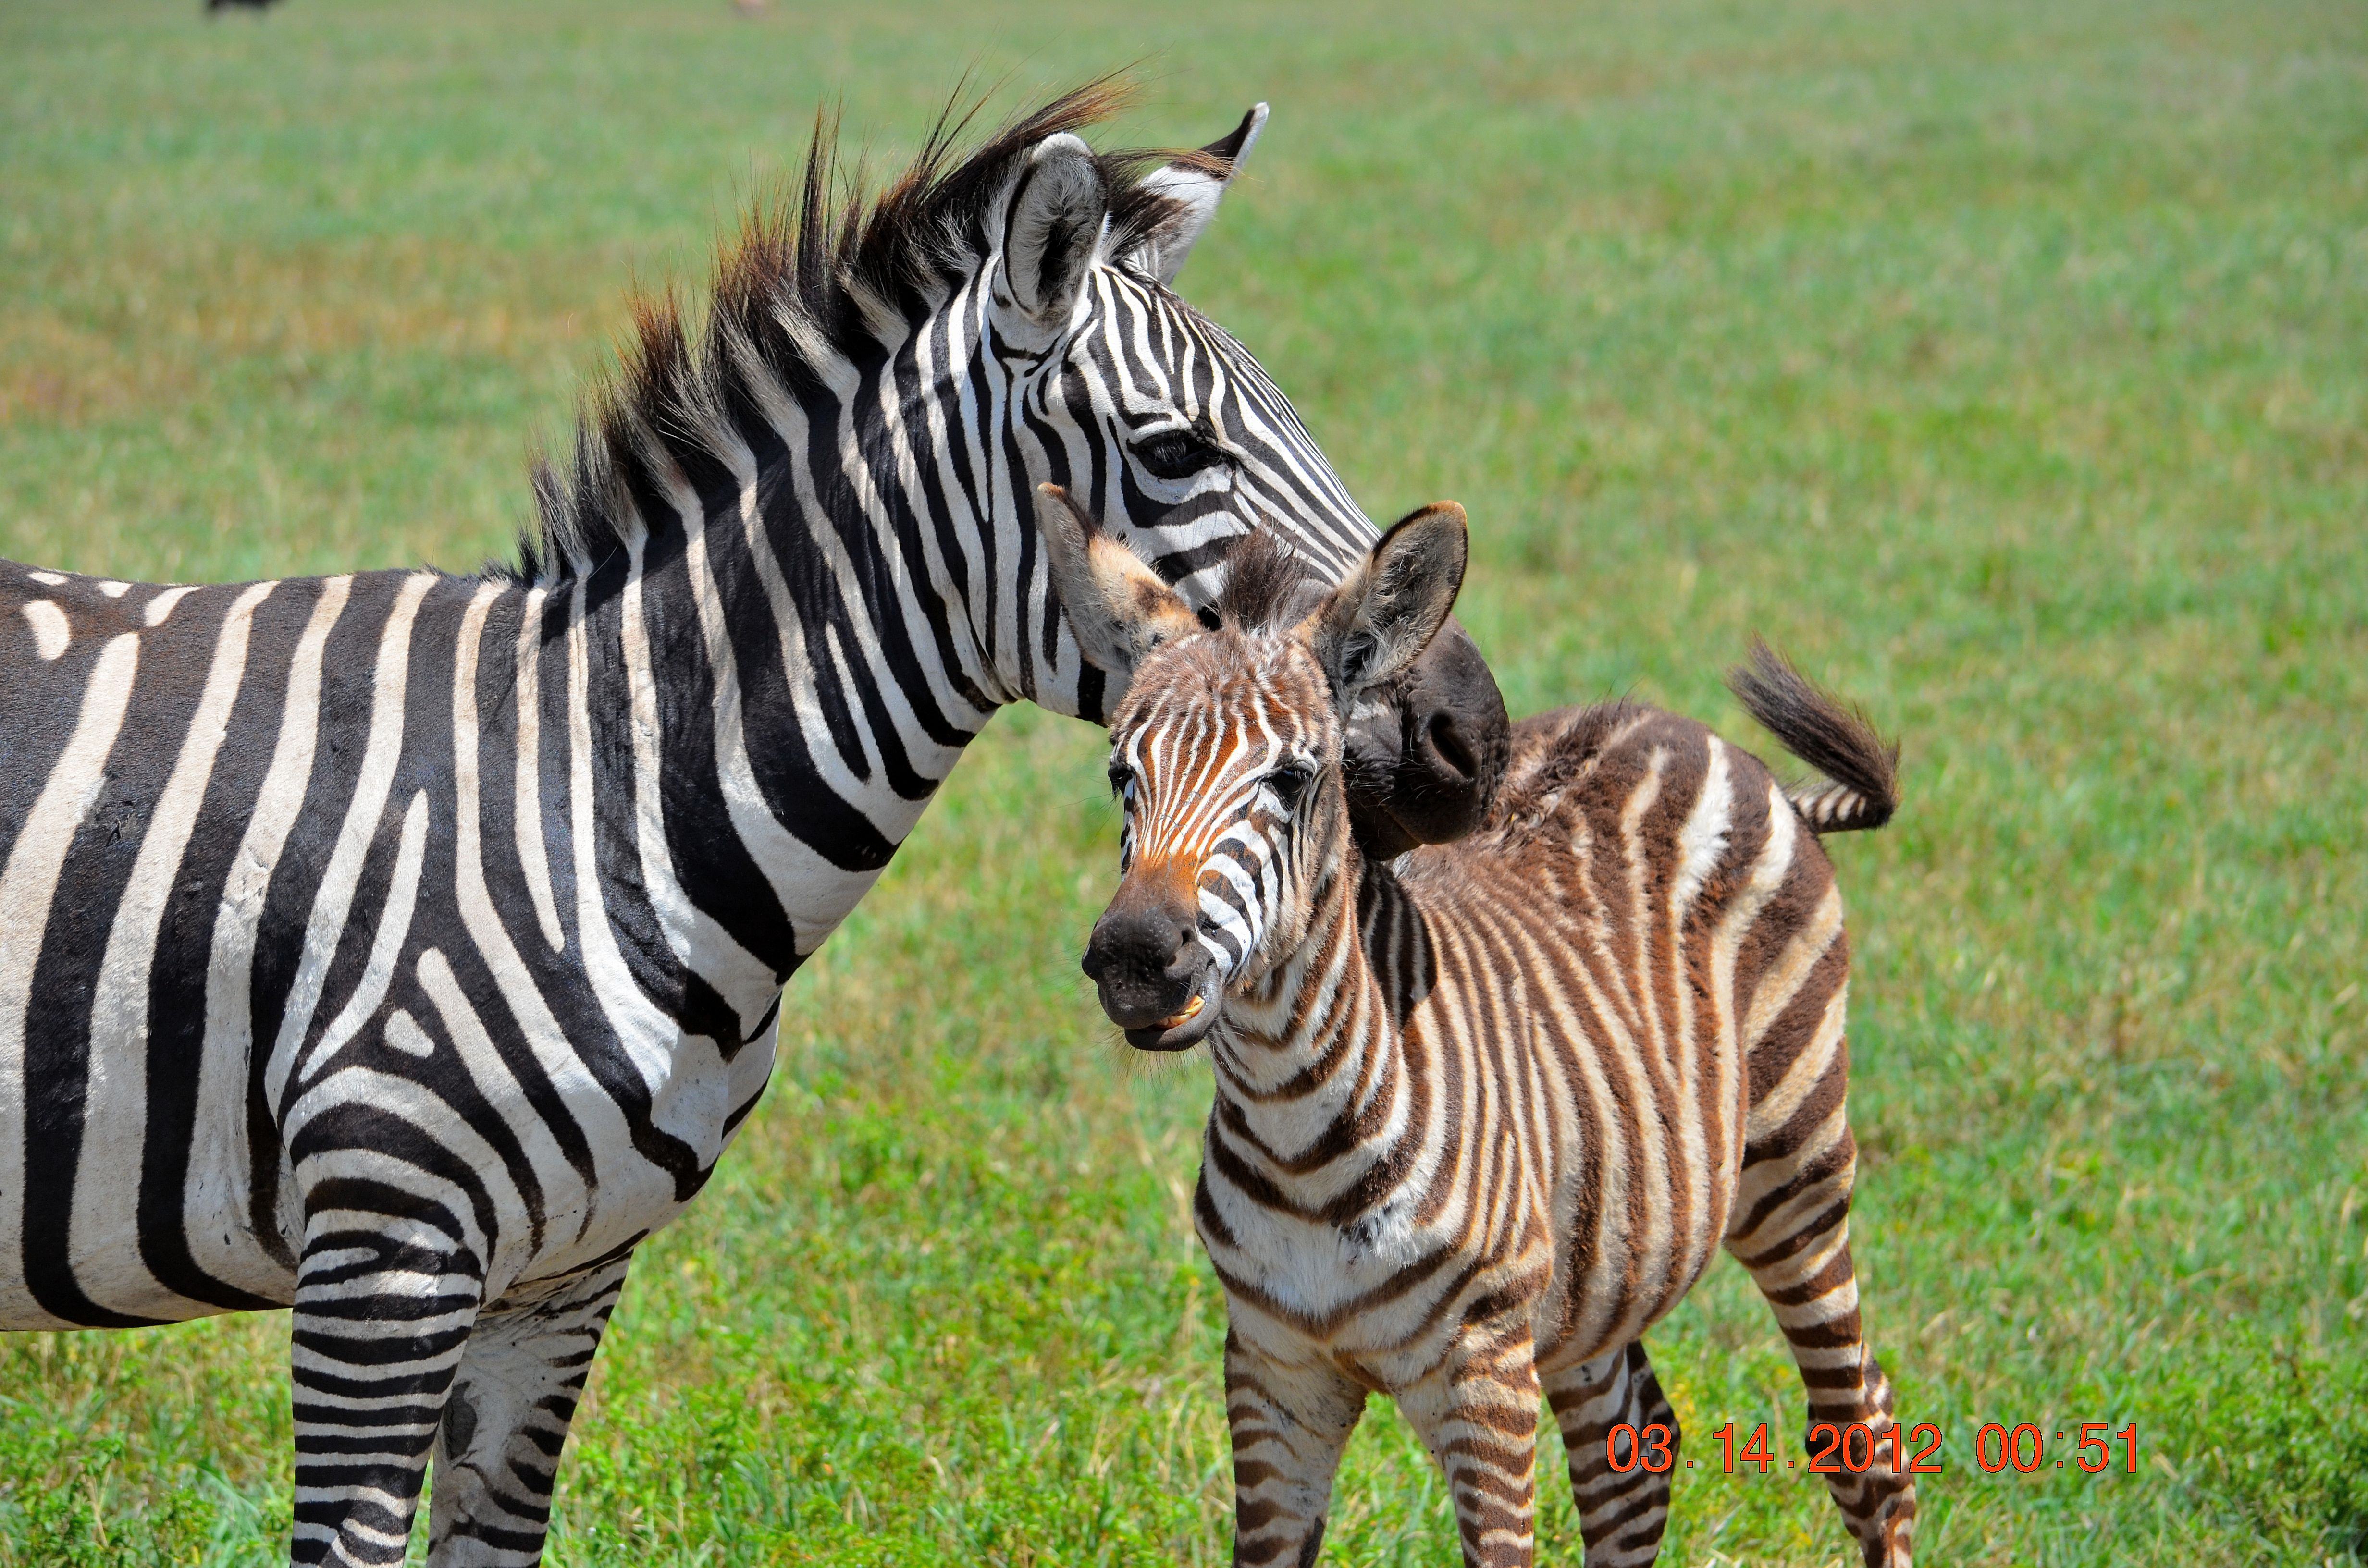 Zebra baby and mother - photo#18